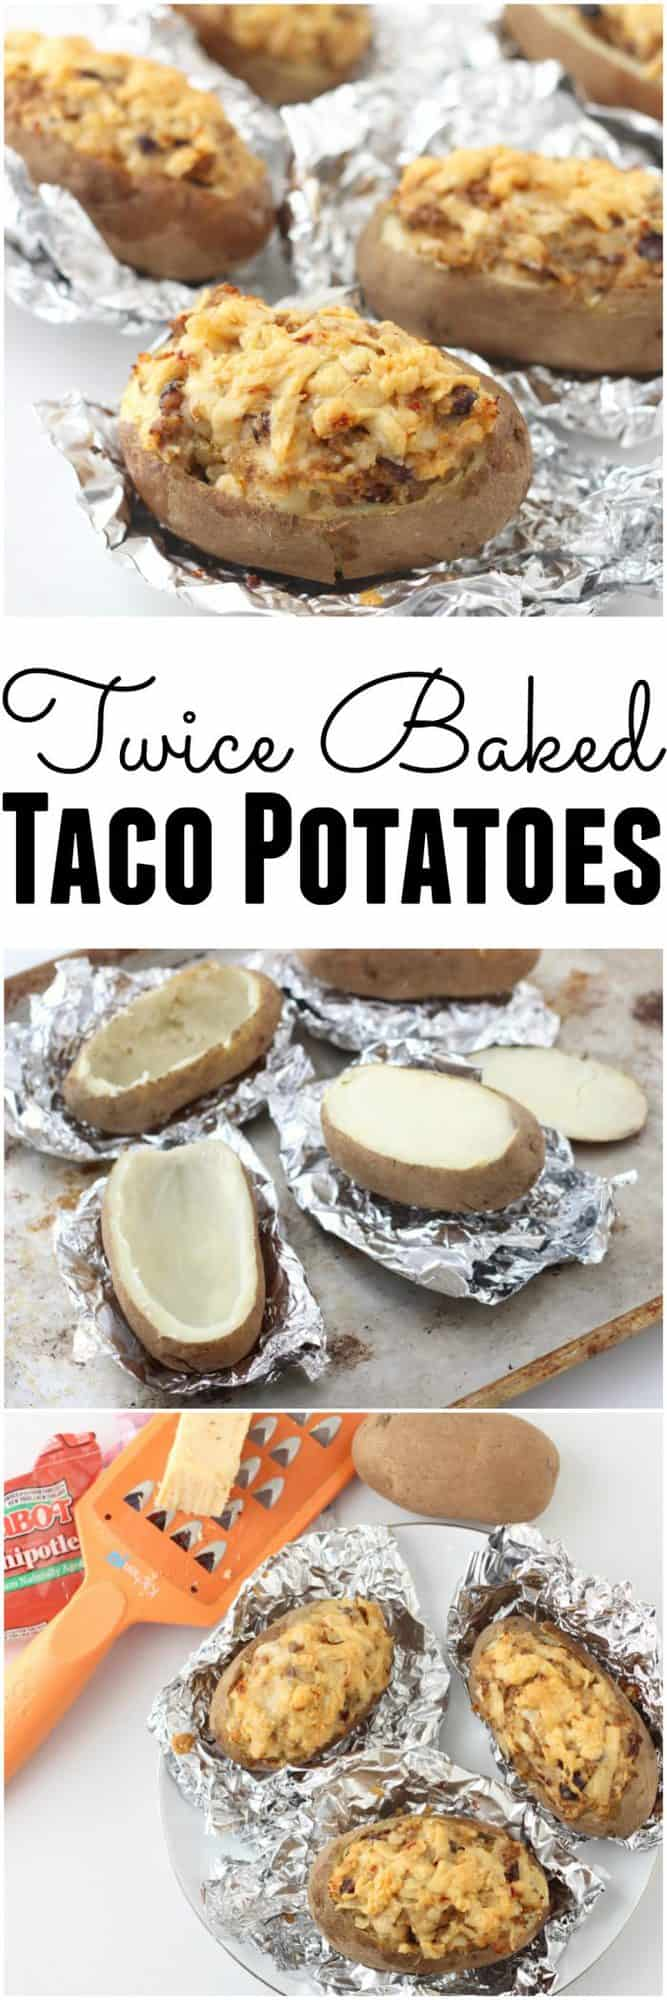 You can't go wrong when you mix tacos and twice baked potatoes! Use up your leftovers for these delicious Twice Baked Taco Potatoes from @memeinge. This healthy recipe makes your leftovers look like a great idea for dinner